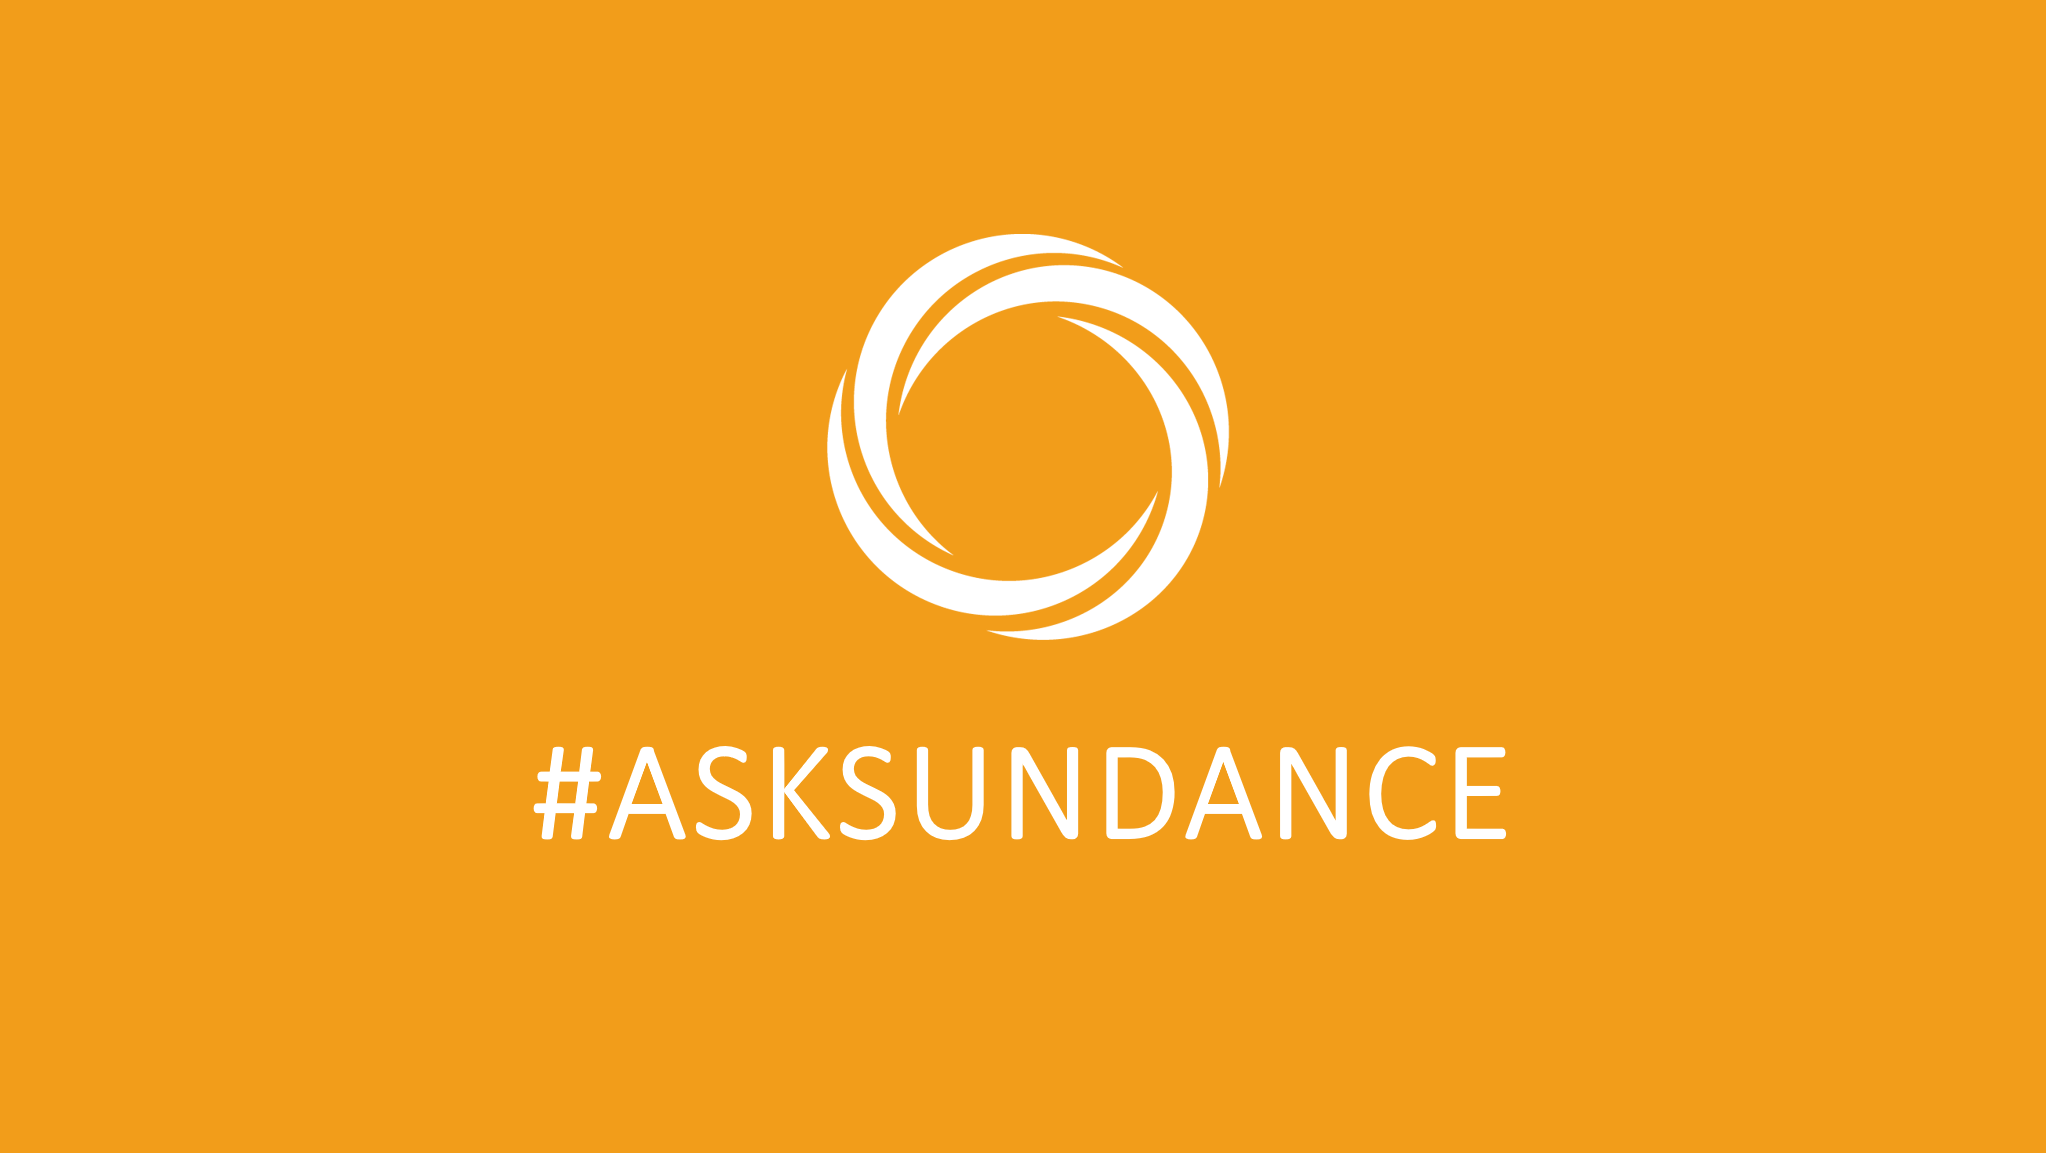 #asksundance: How Do You Help Tradeshow Clients Engage with Leads?